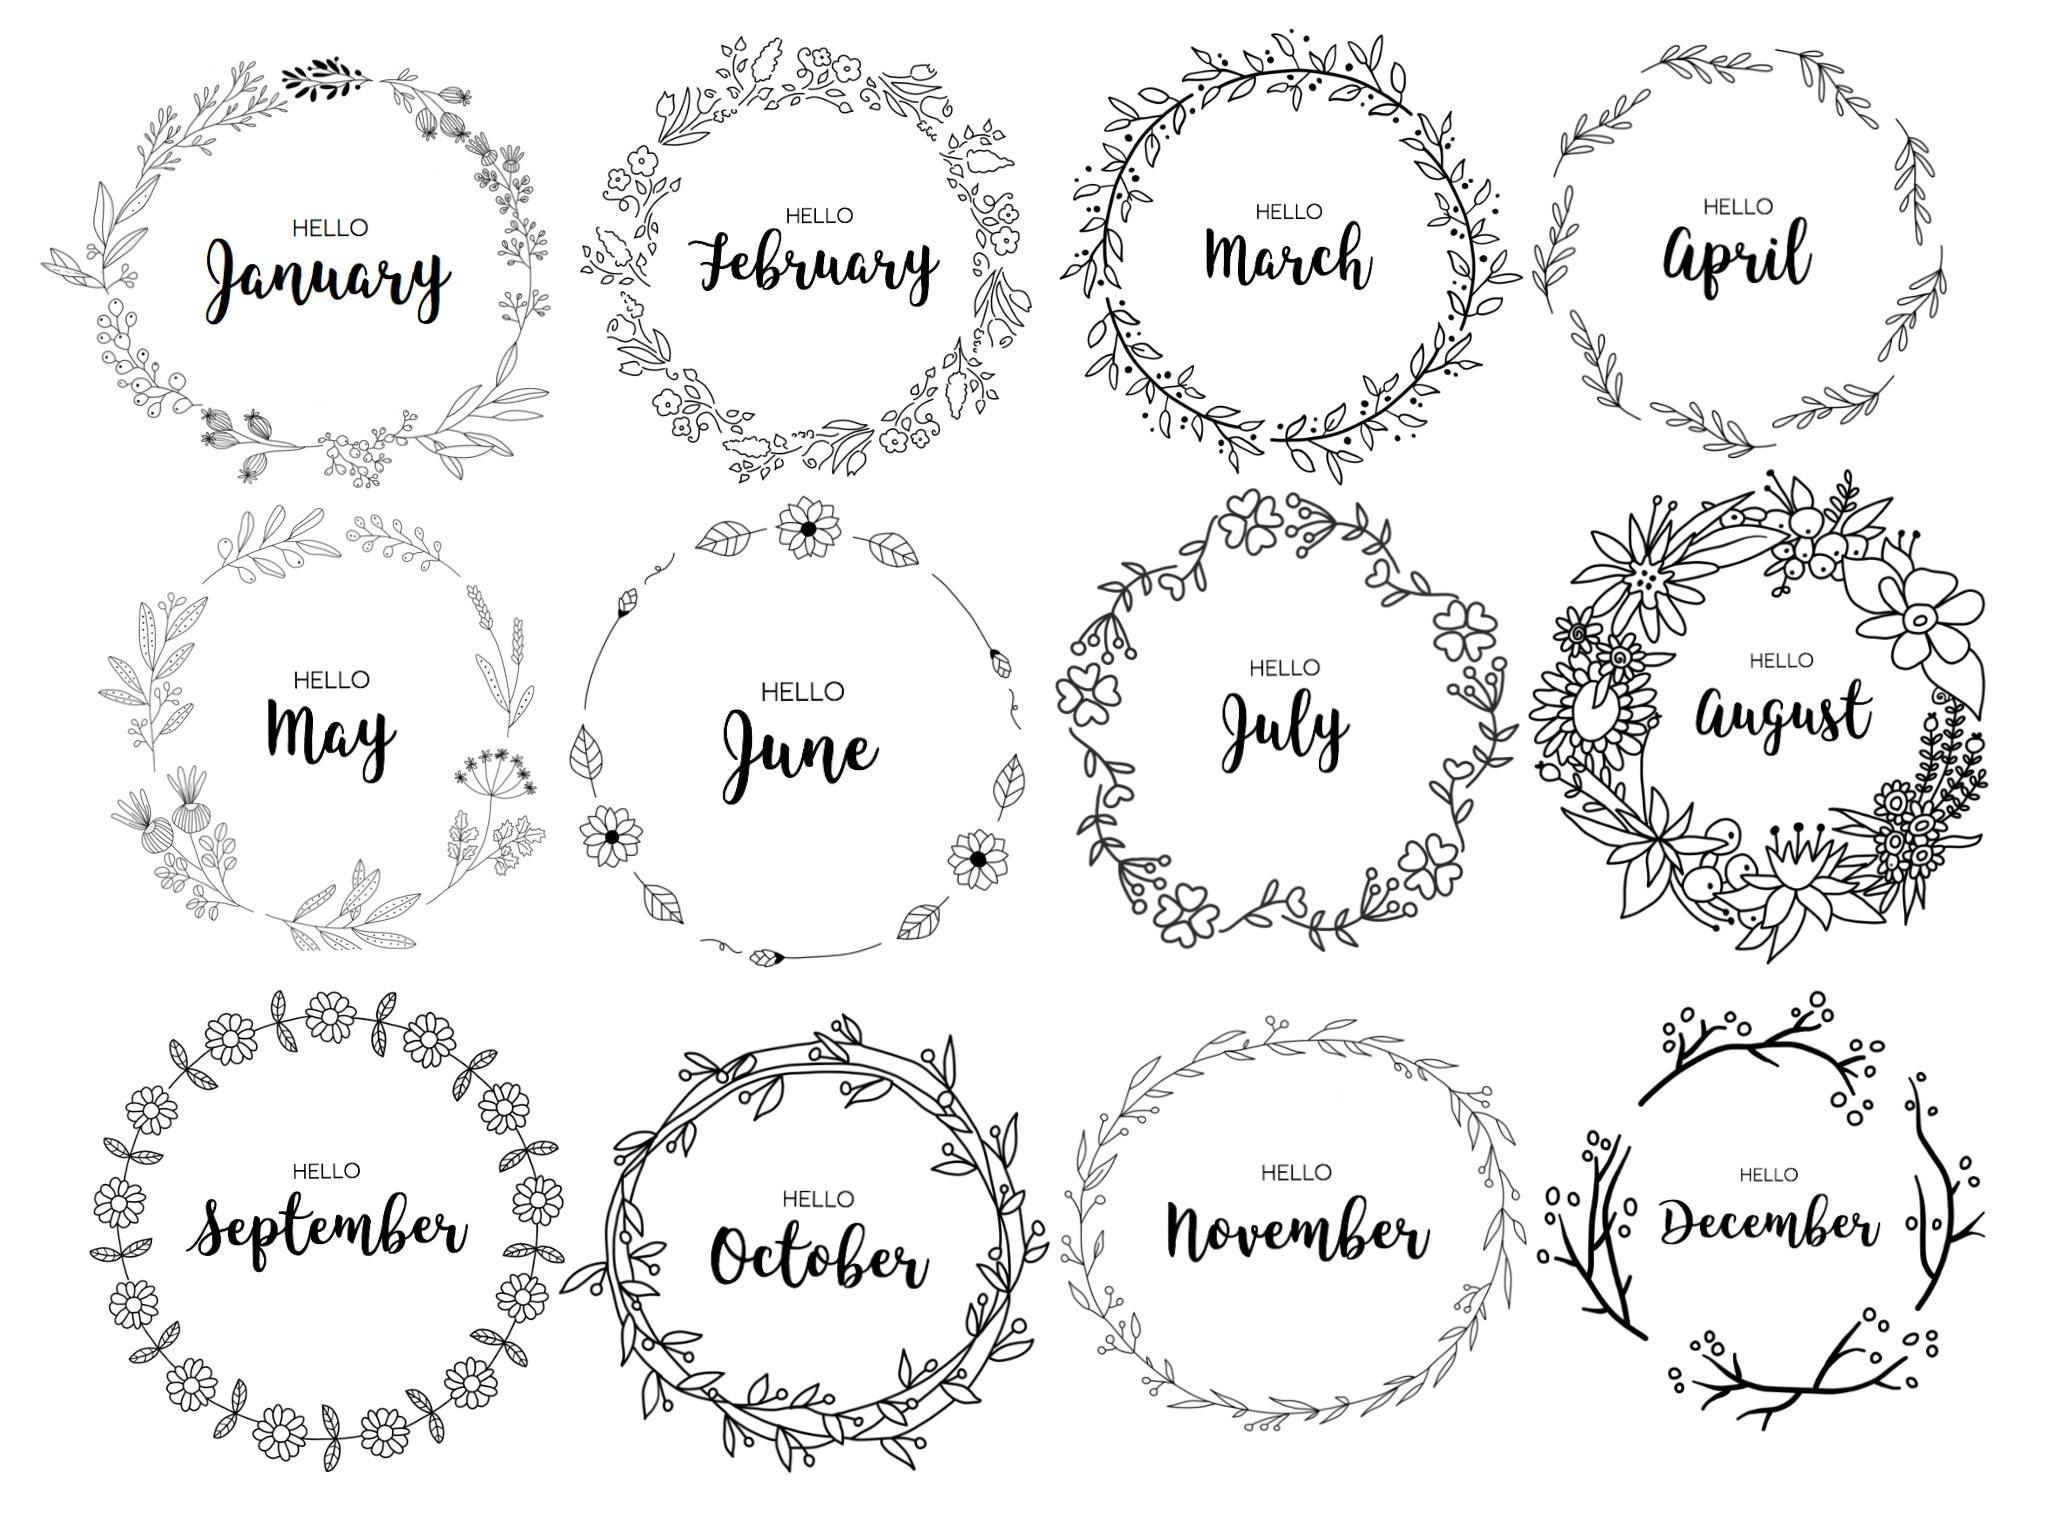 Pin By Victoria On Coloring Pages In 2020 Bullet Journal Bullet Journal Month Bullet Journal Doodles